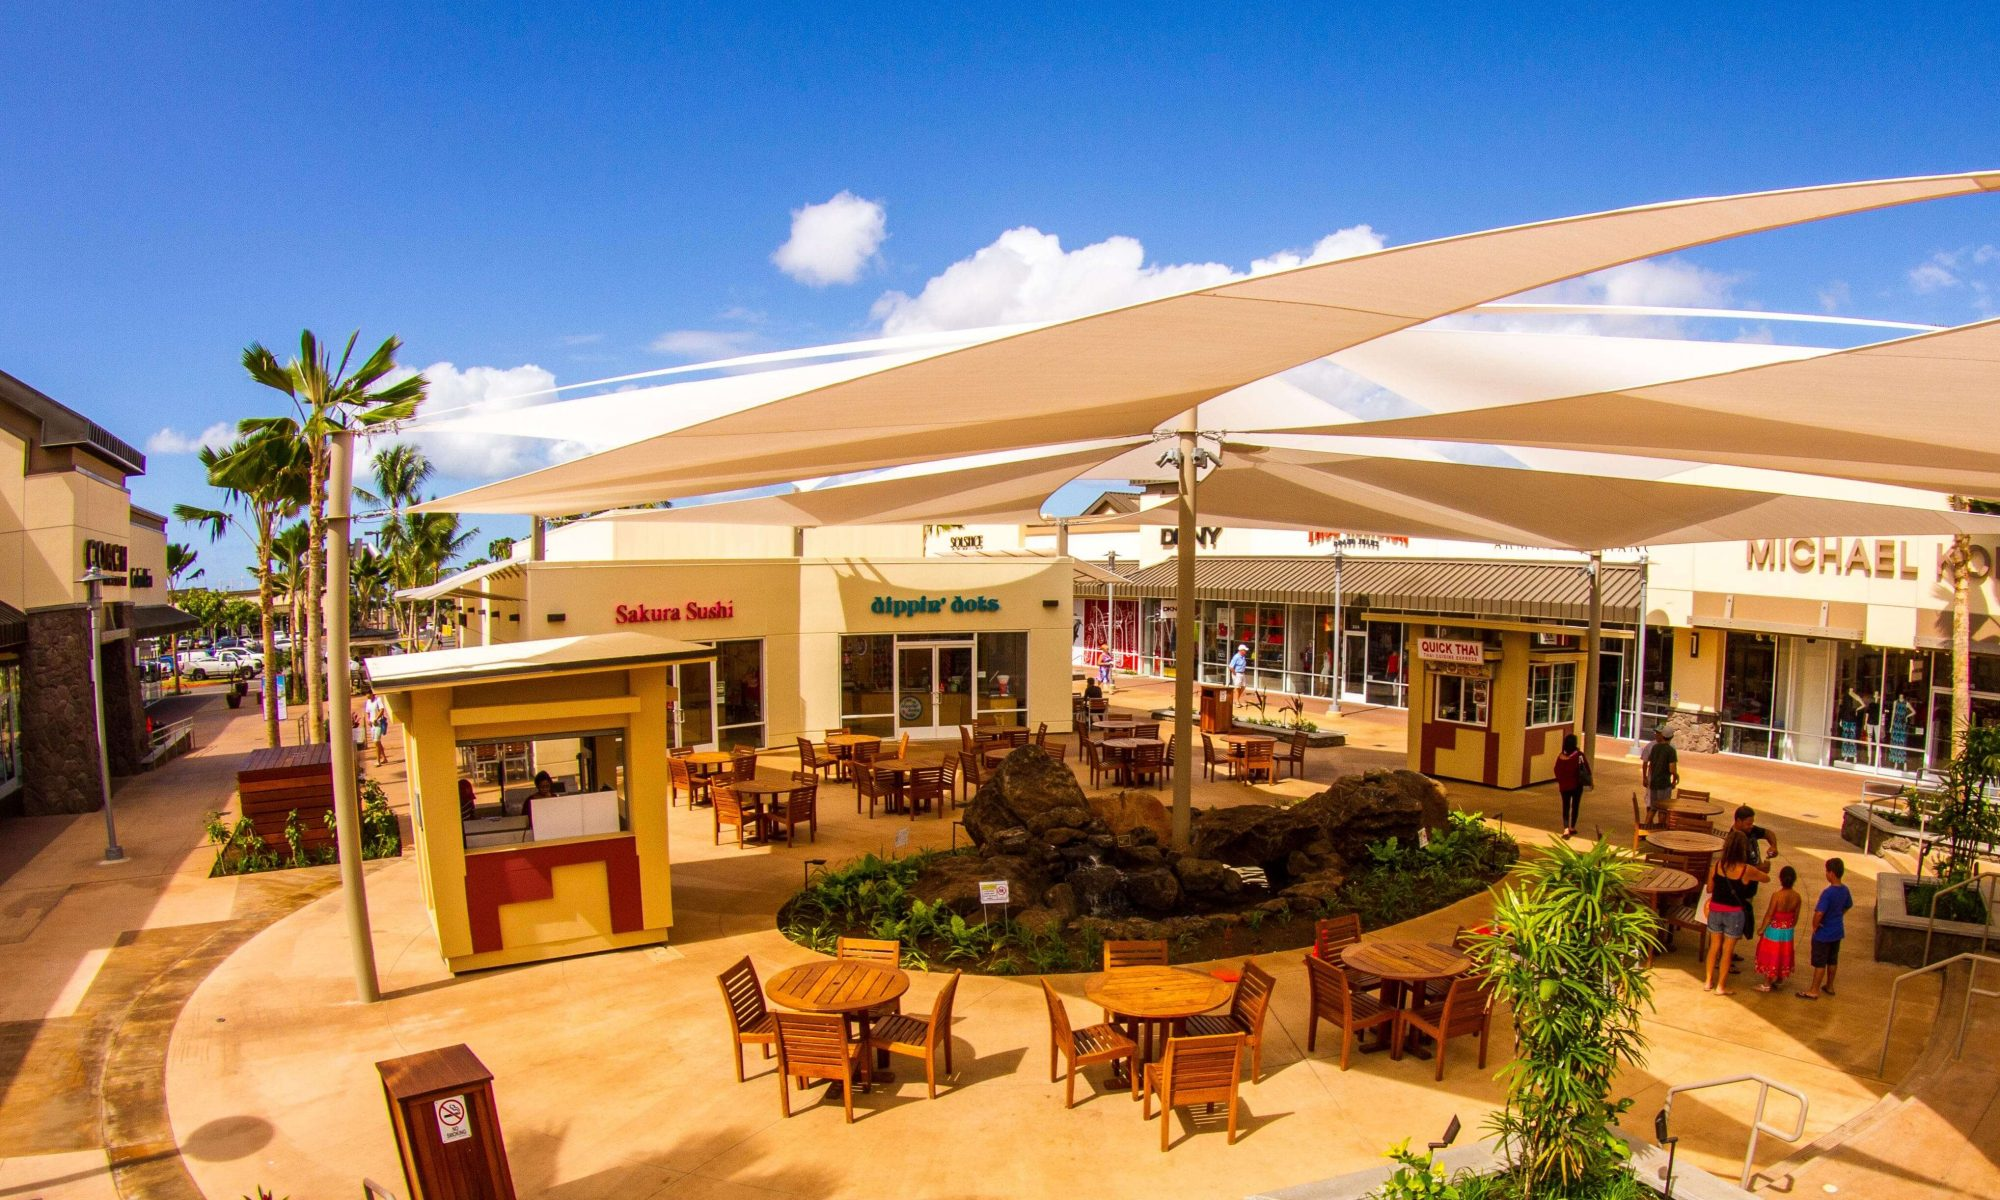 Food court at Waikele Premium Outlets